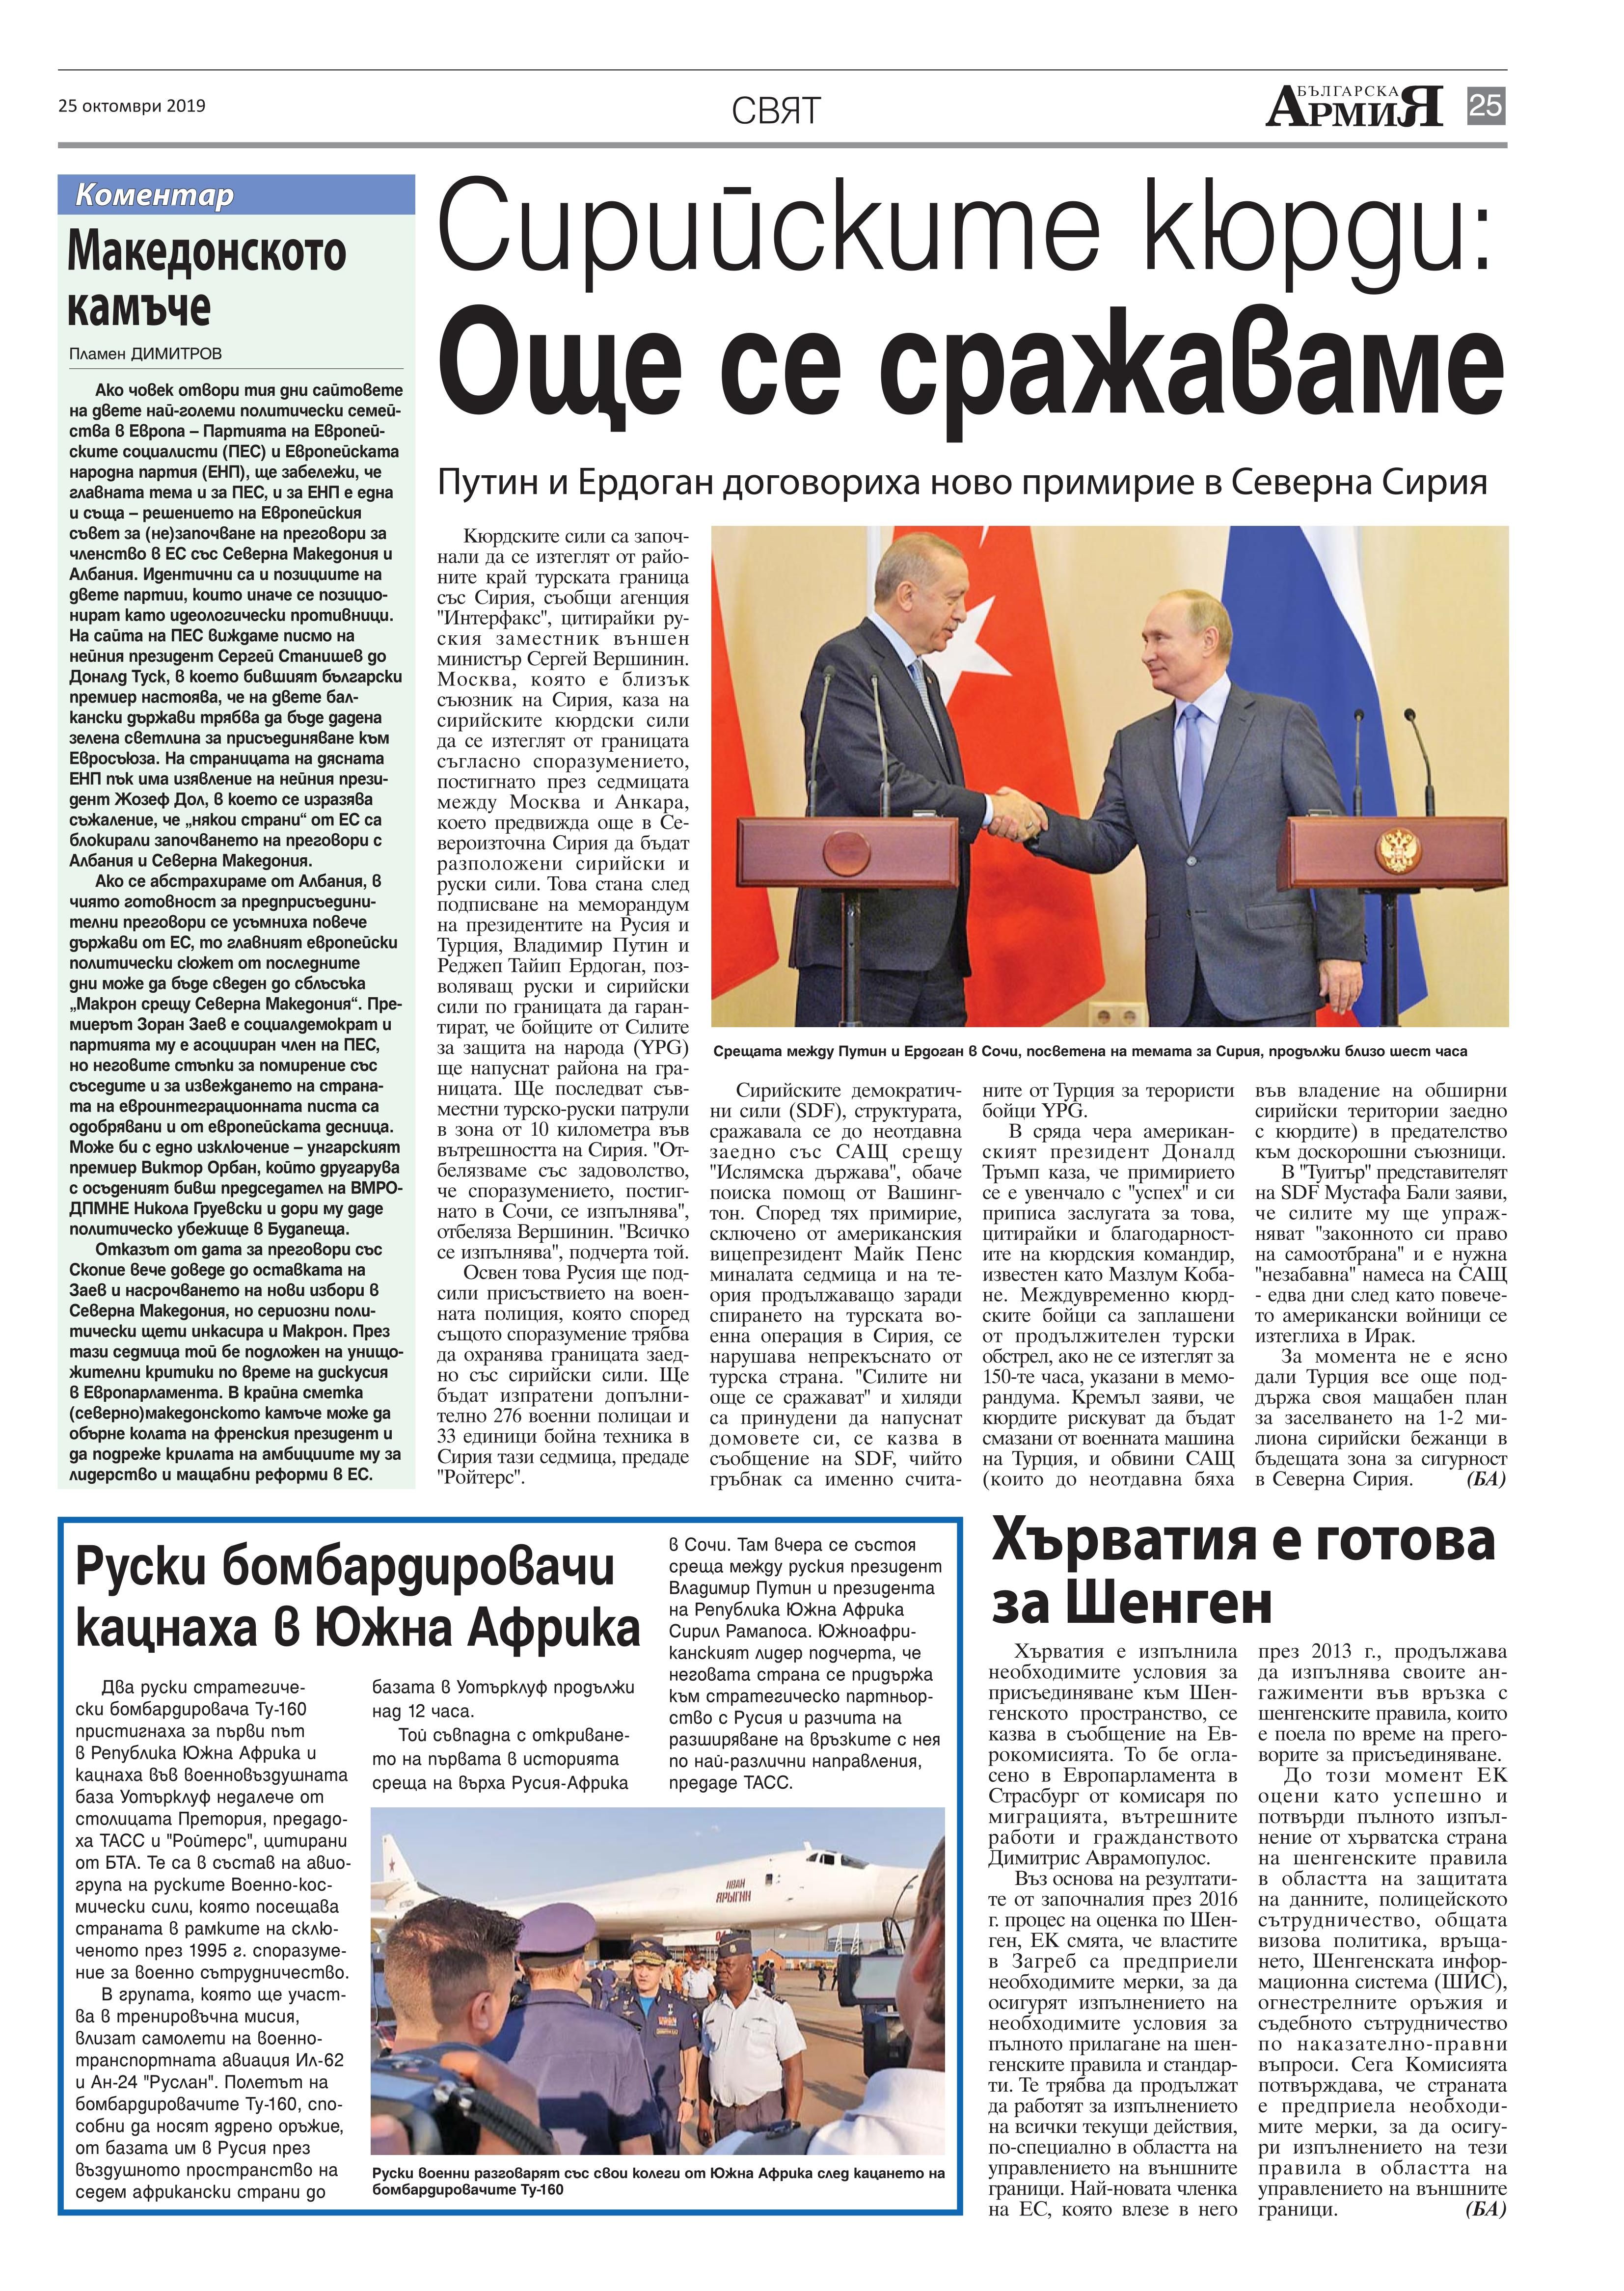 https://www.armymedia.bg/wp-content/uploads/2015/06/25.page1_-94.jpg